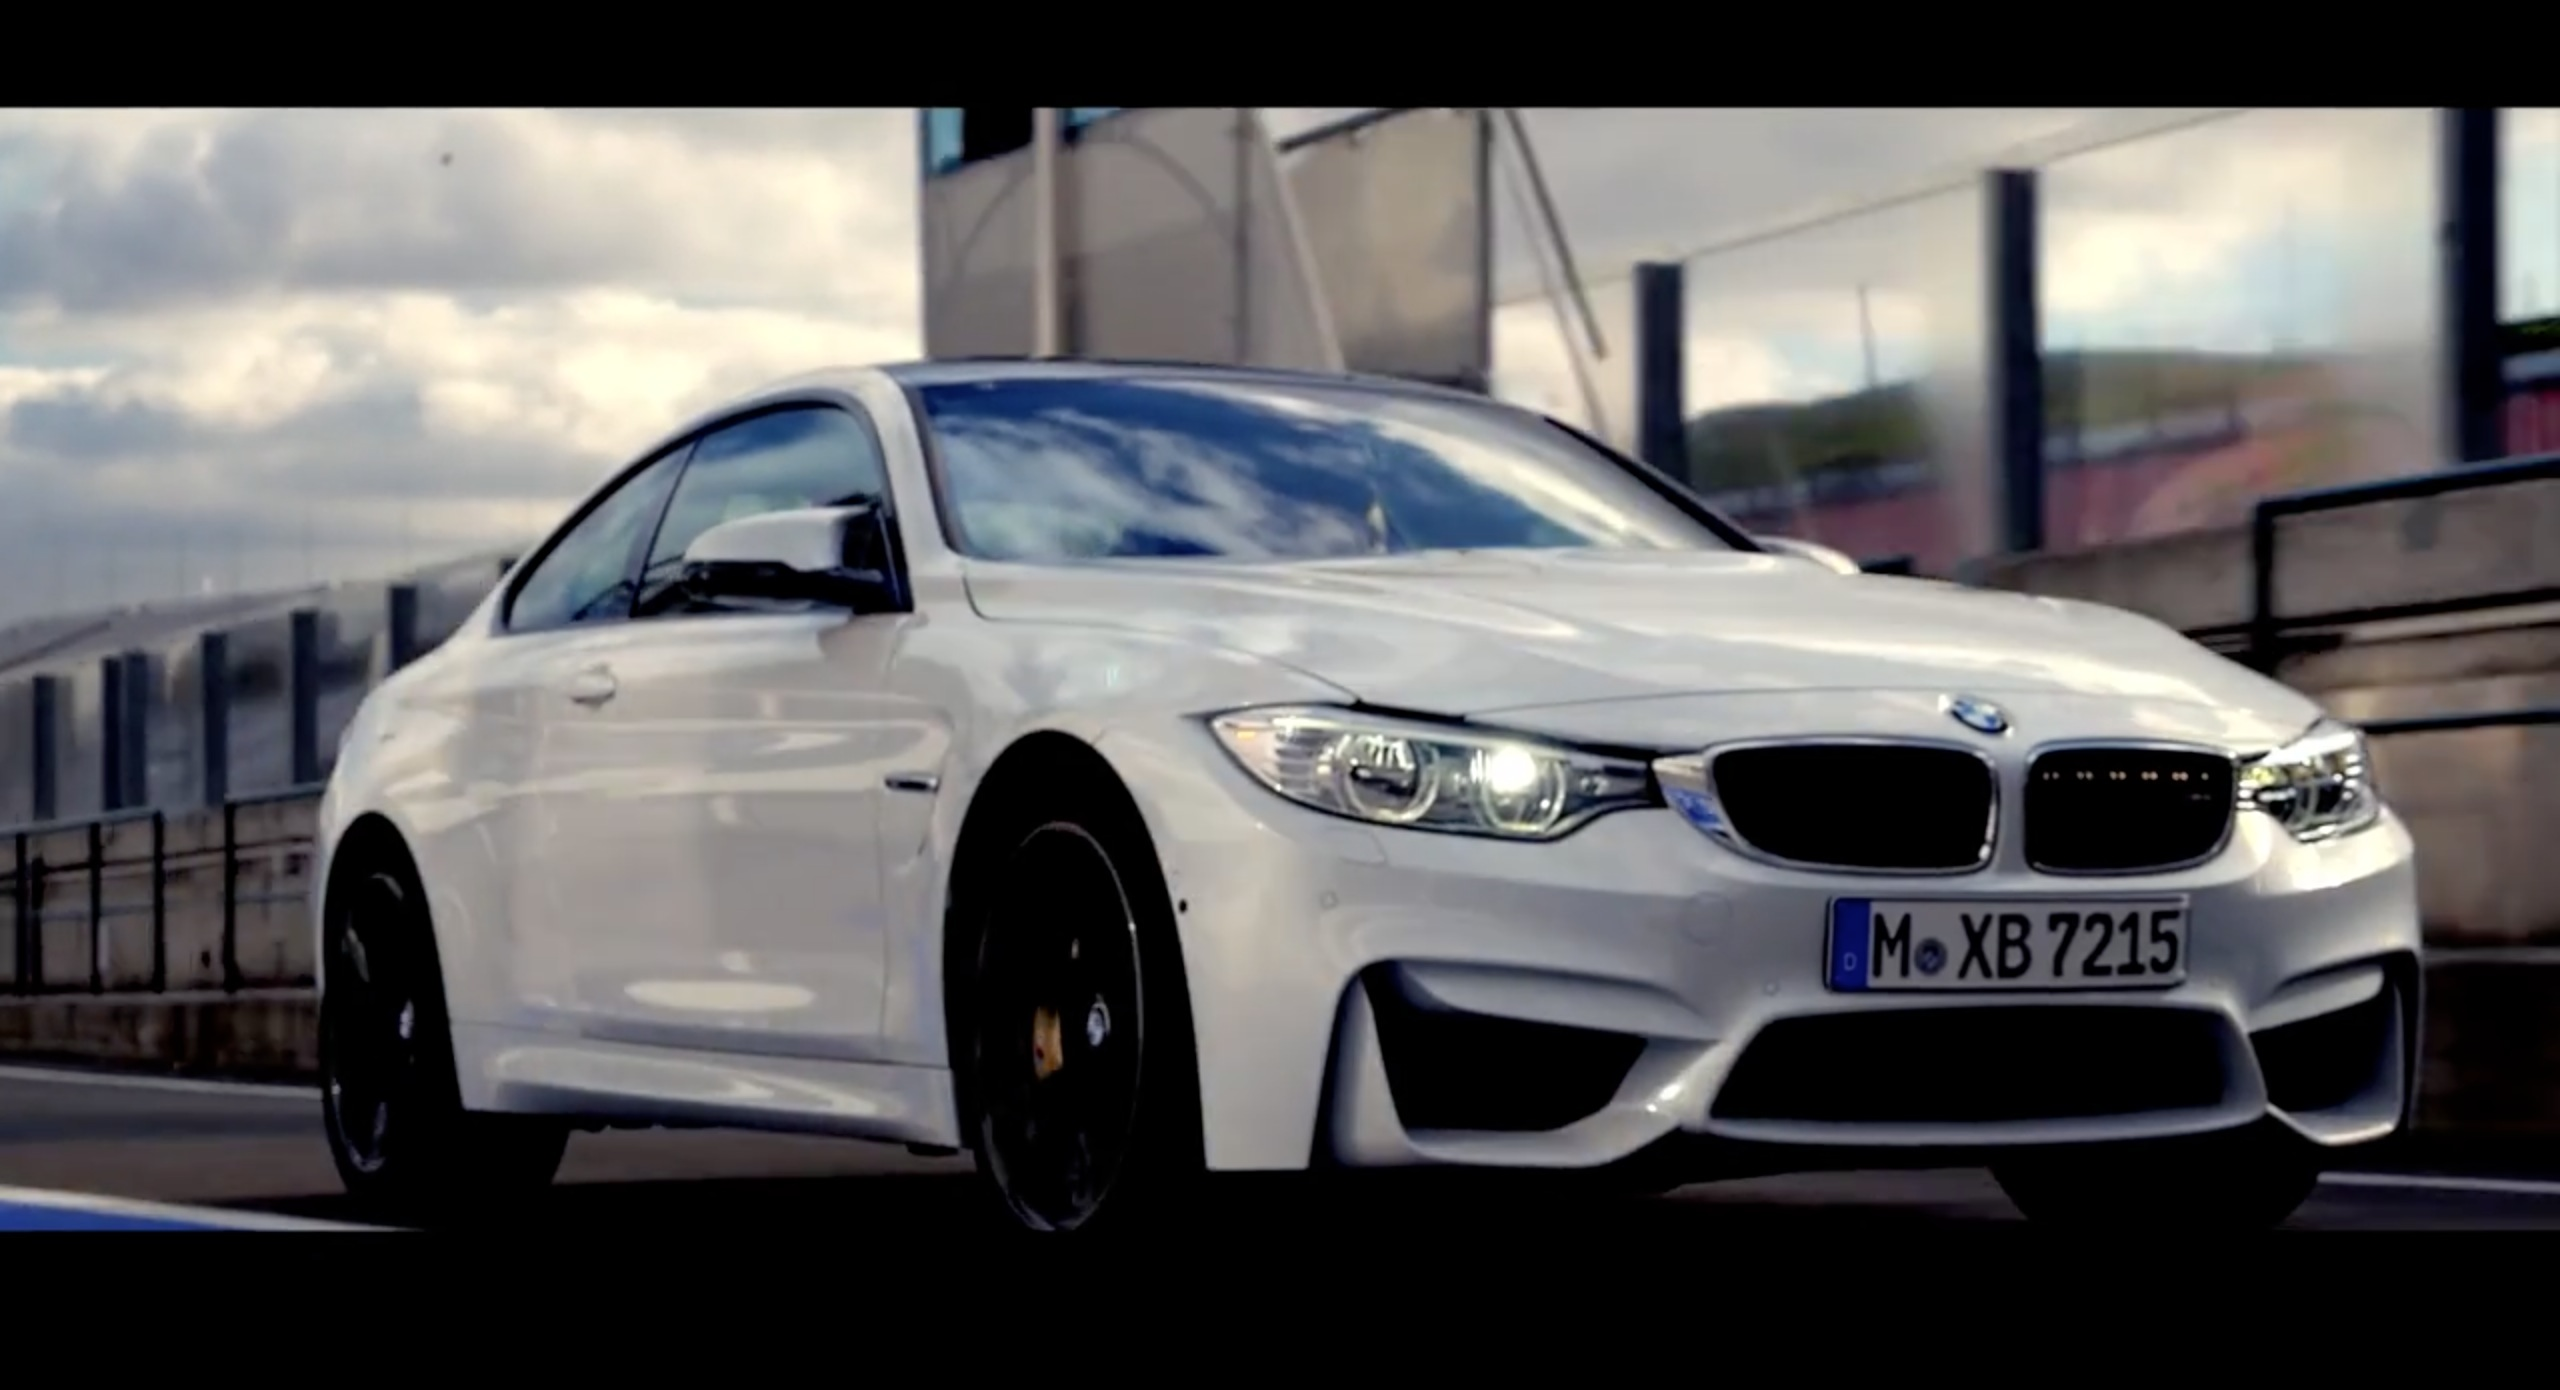 More Looks At White Bmw M4 Coupe In Behind The Shoot Video